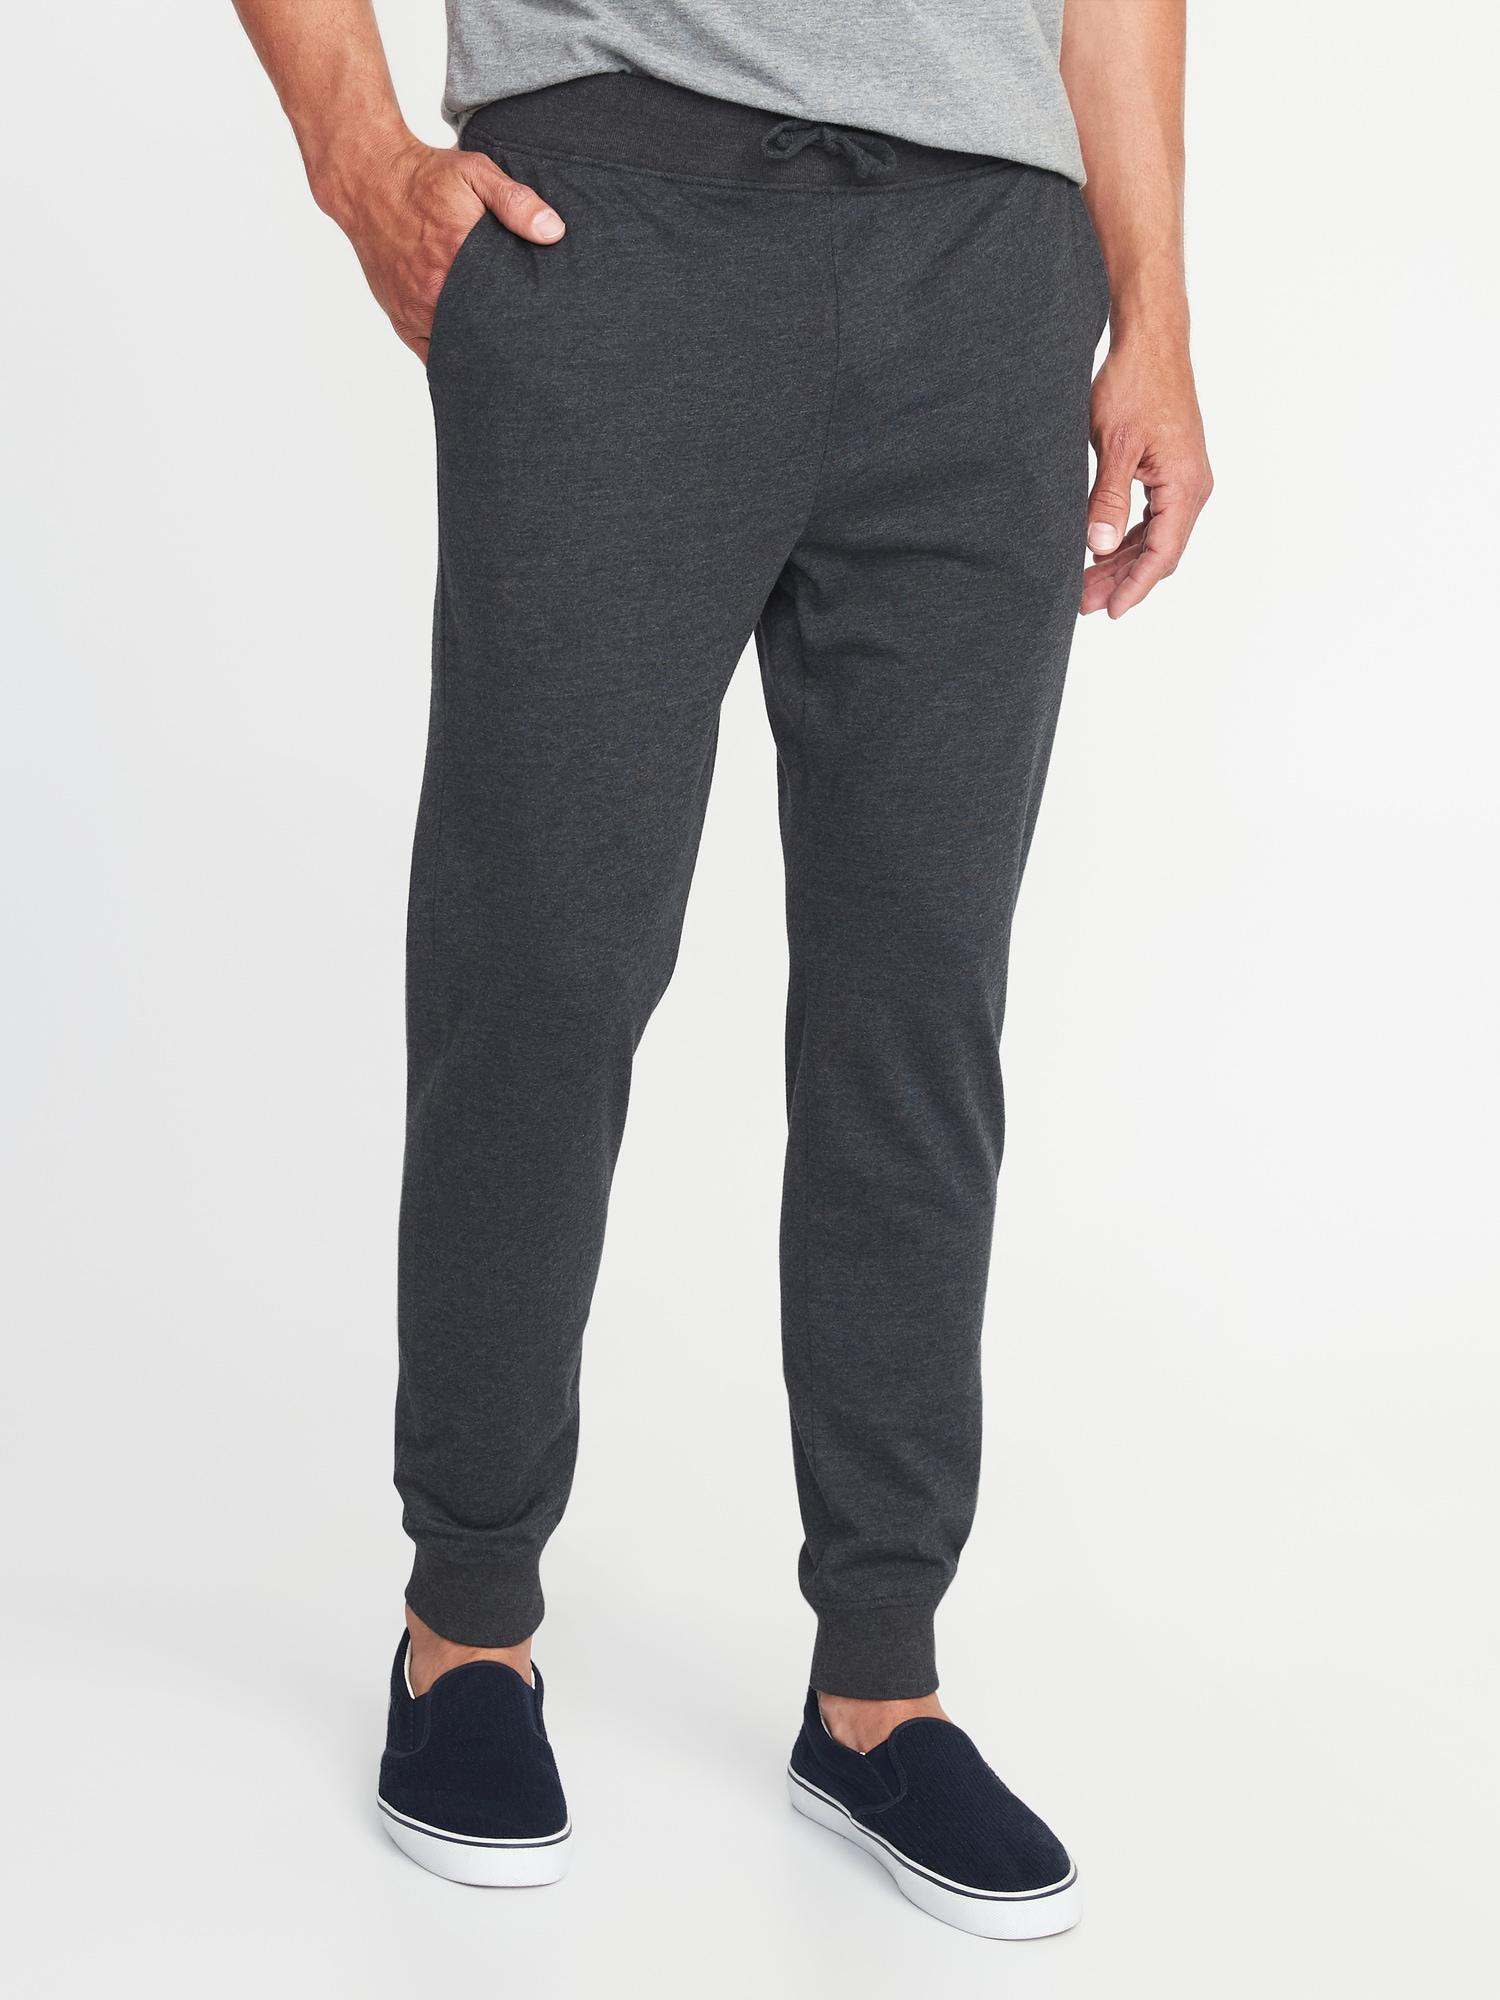 Old Navy Soft-Washed Jersey Knit Joggers - Girls have athlesiure down, so it's time to show guys the greener pastures of elastic waistbands for outside the house. Joggers are cool and publicly-acceptable sweatpants for everyday! I like to think of them as the yoga pants for guys. What makes them better than yoga pants is the price!! With joggers that cheap, you should probably pick up one in every color.